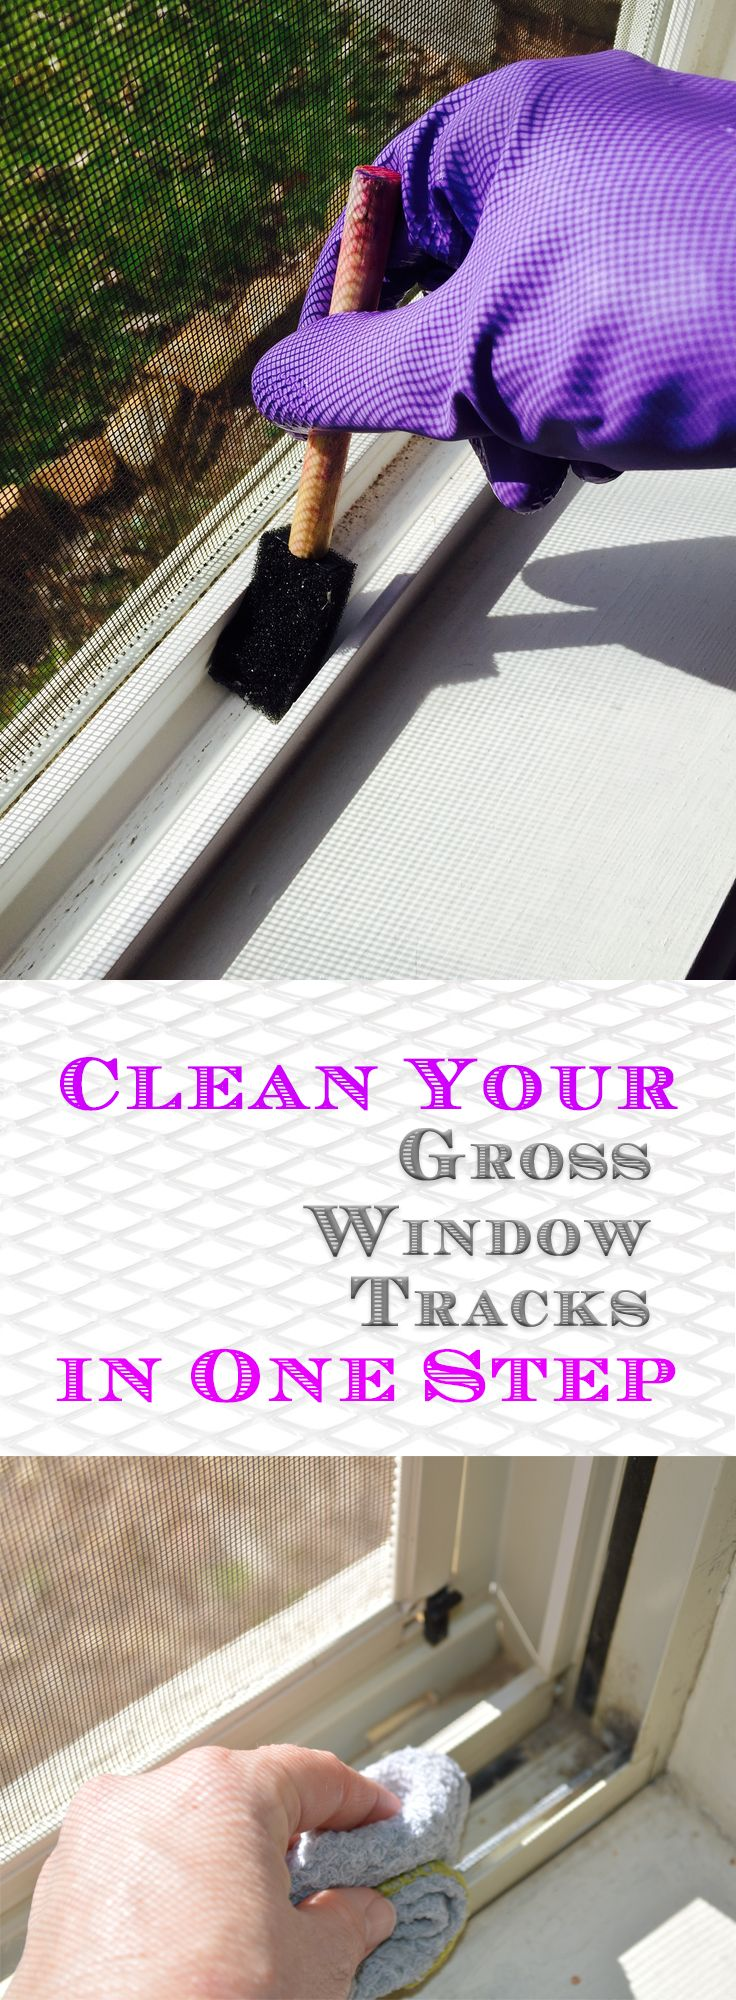 Clean Your Gross Window Tracks in One Step - Random Somethings